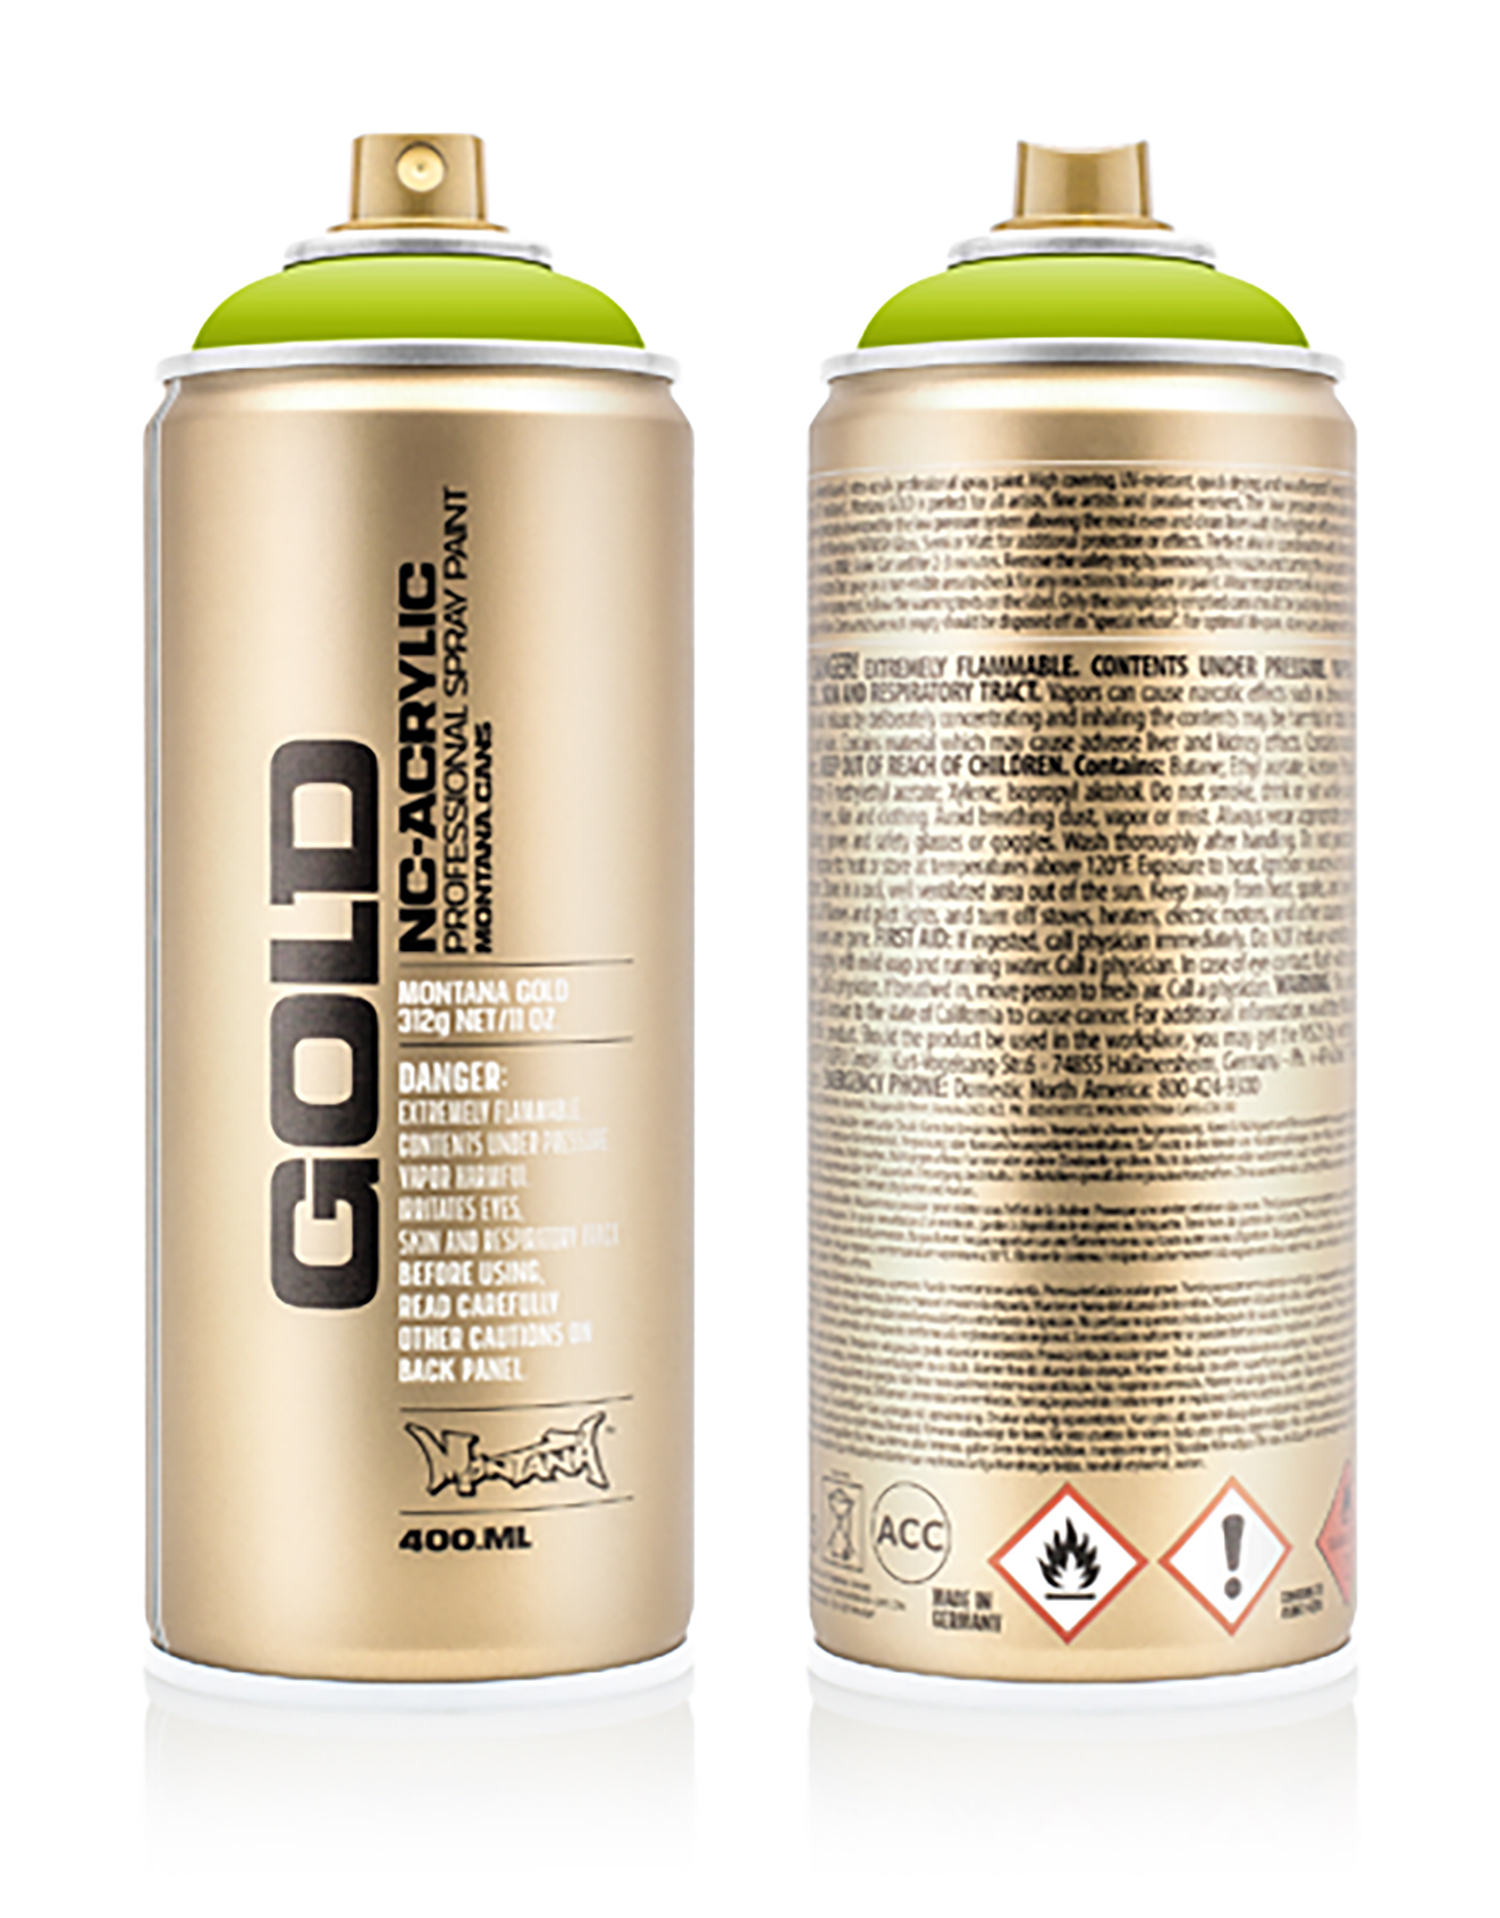 MONTANA-GOLD-SPRAY-400ML-CL-6330